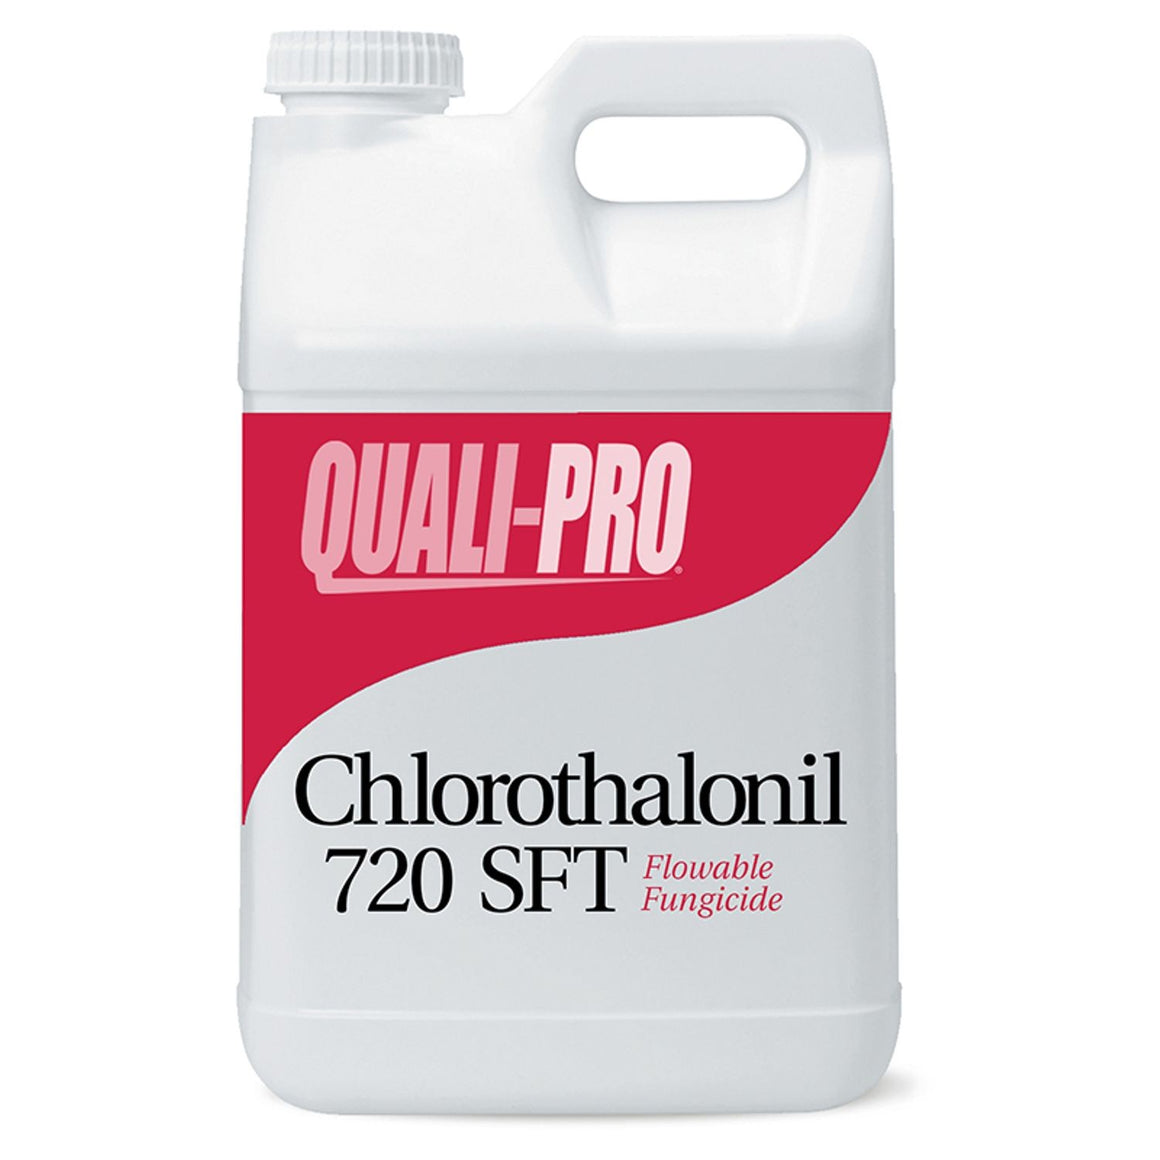 Chlorothalonil 720 SFT Fungicide - 2.5 Gal